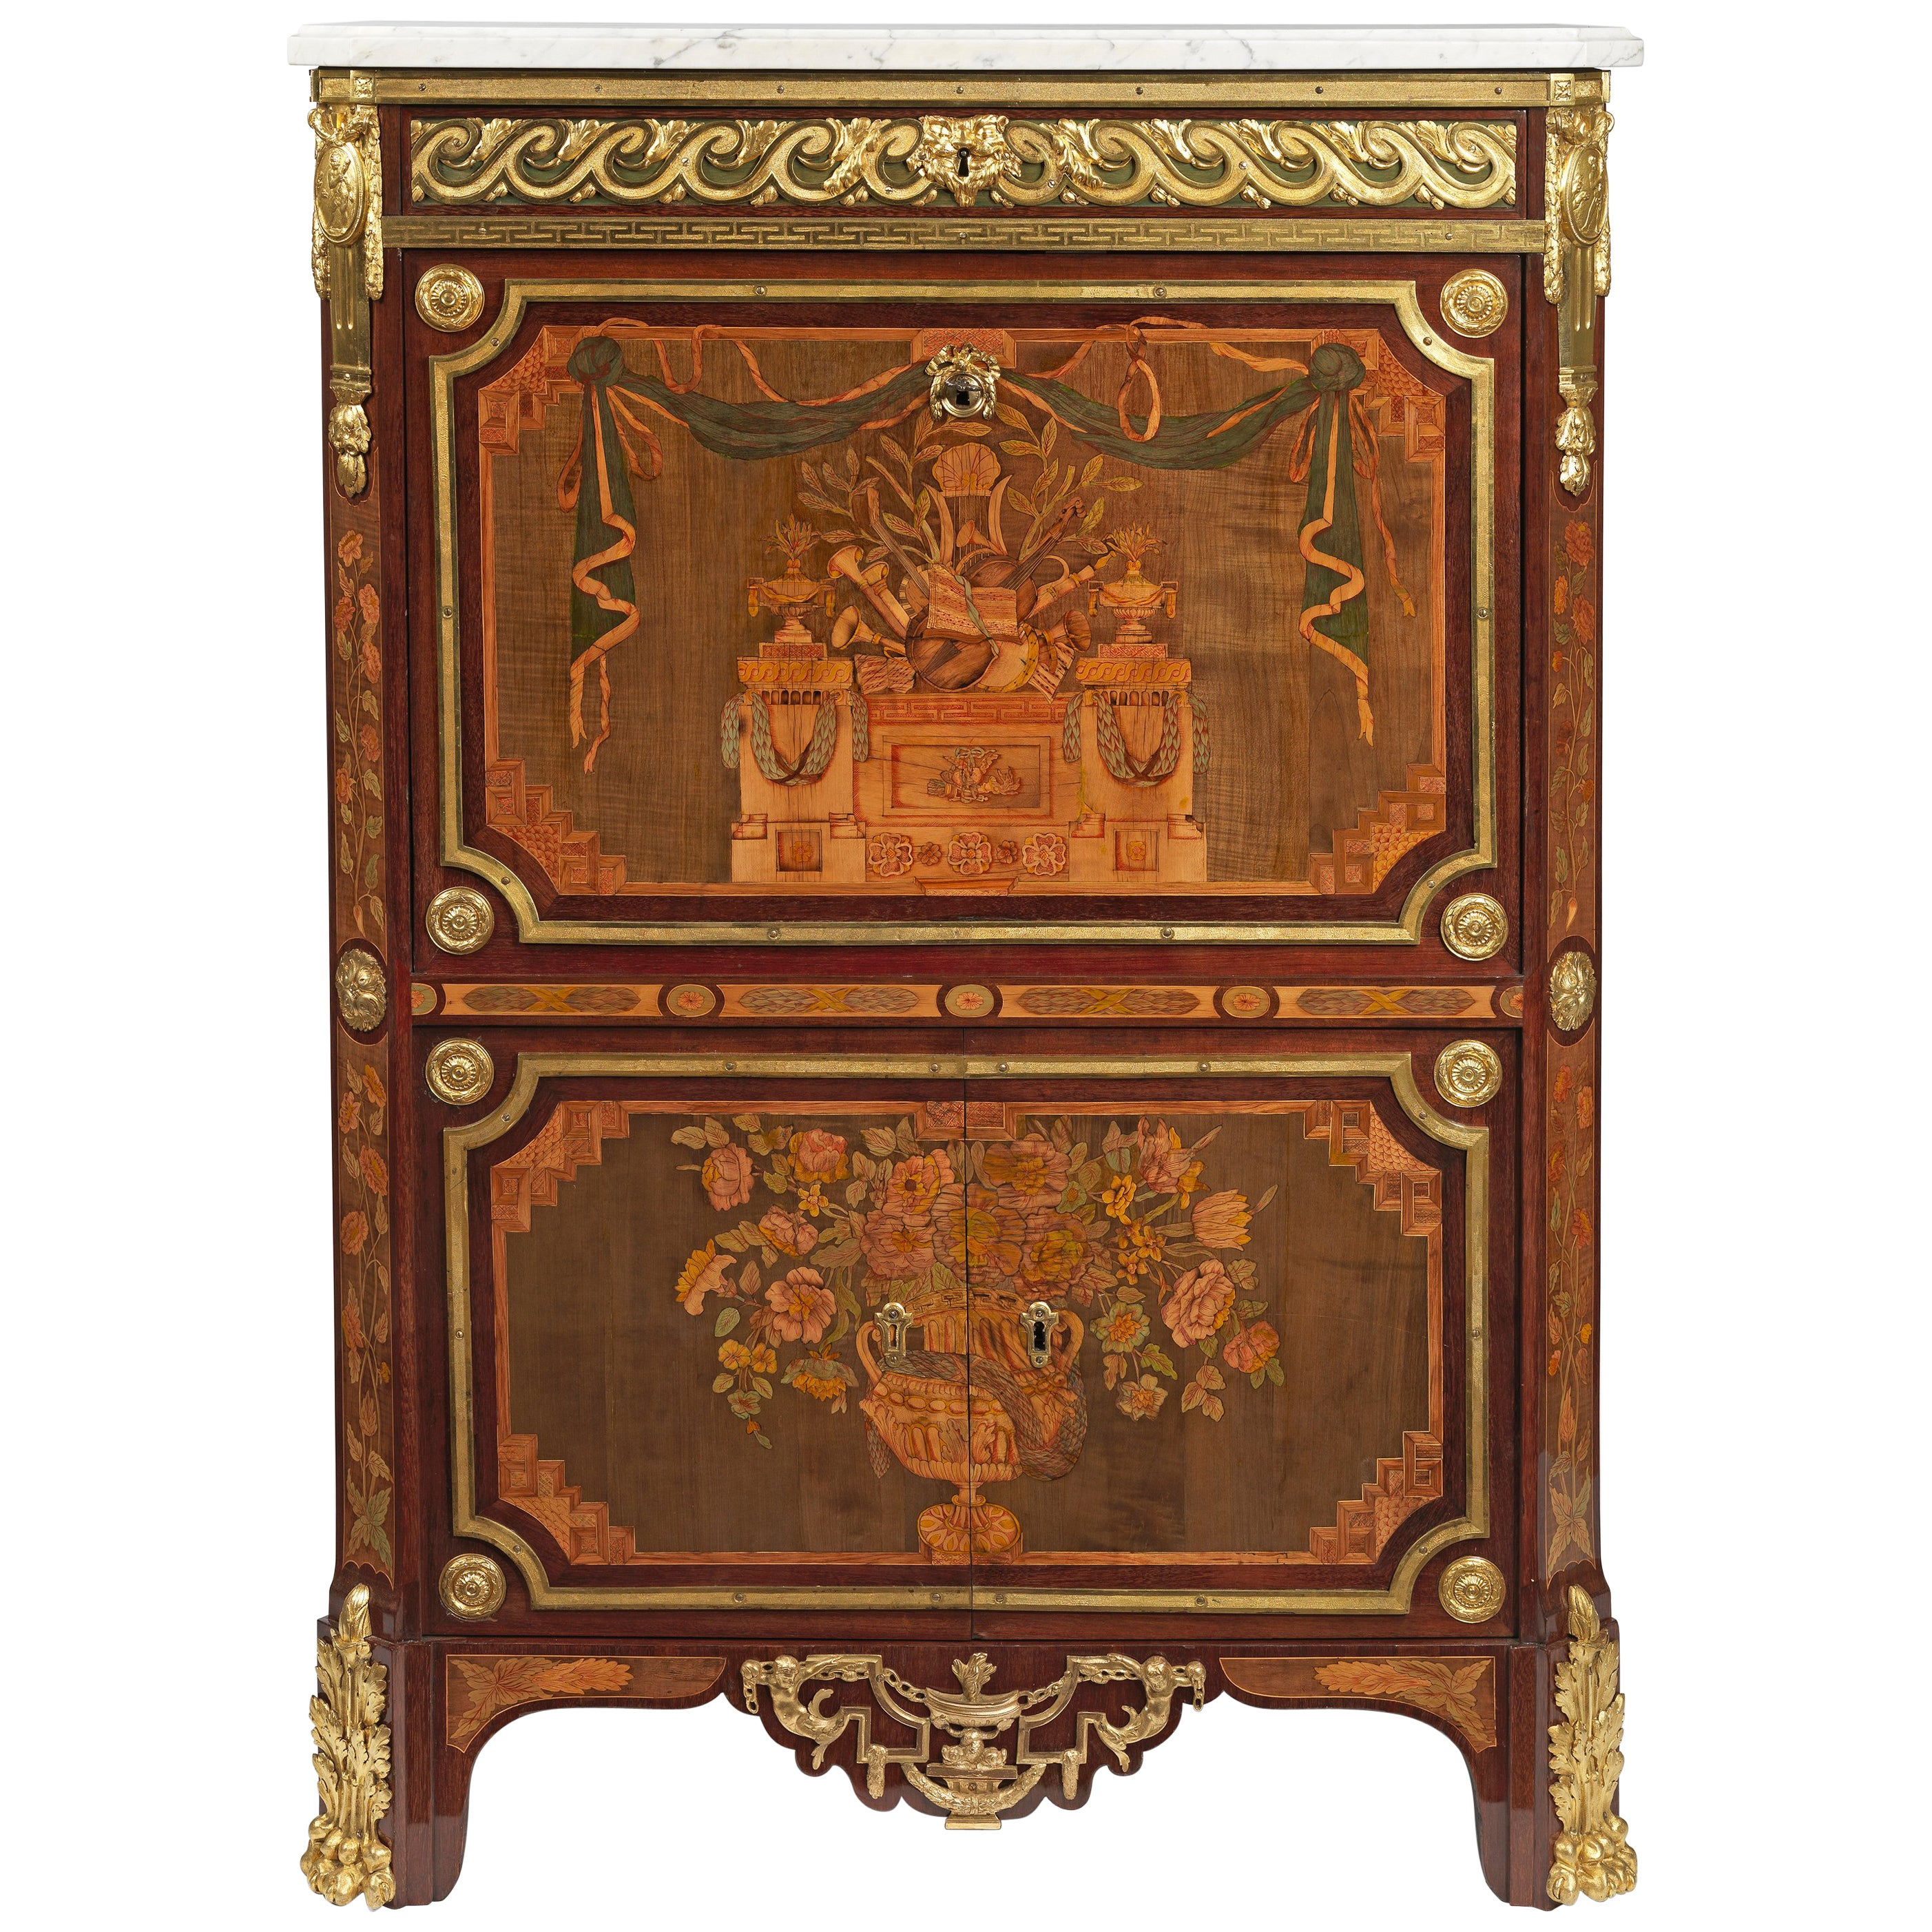 Mapple Meubles Anglais Louis Xvi Ormolu Mounted Marquetry And Parquetry Secretaire à Abattattant